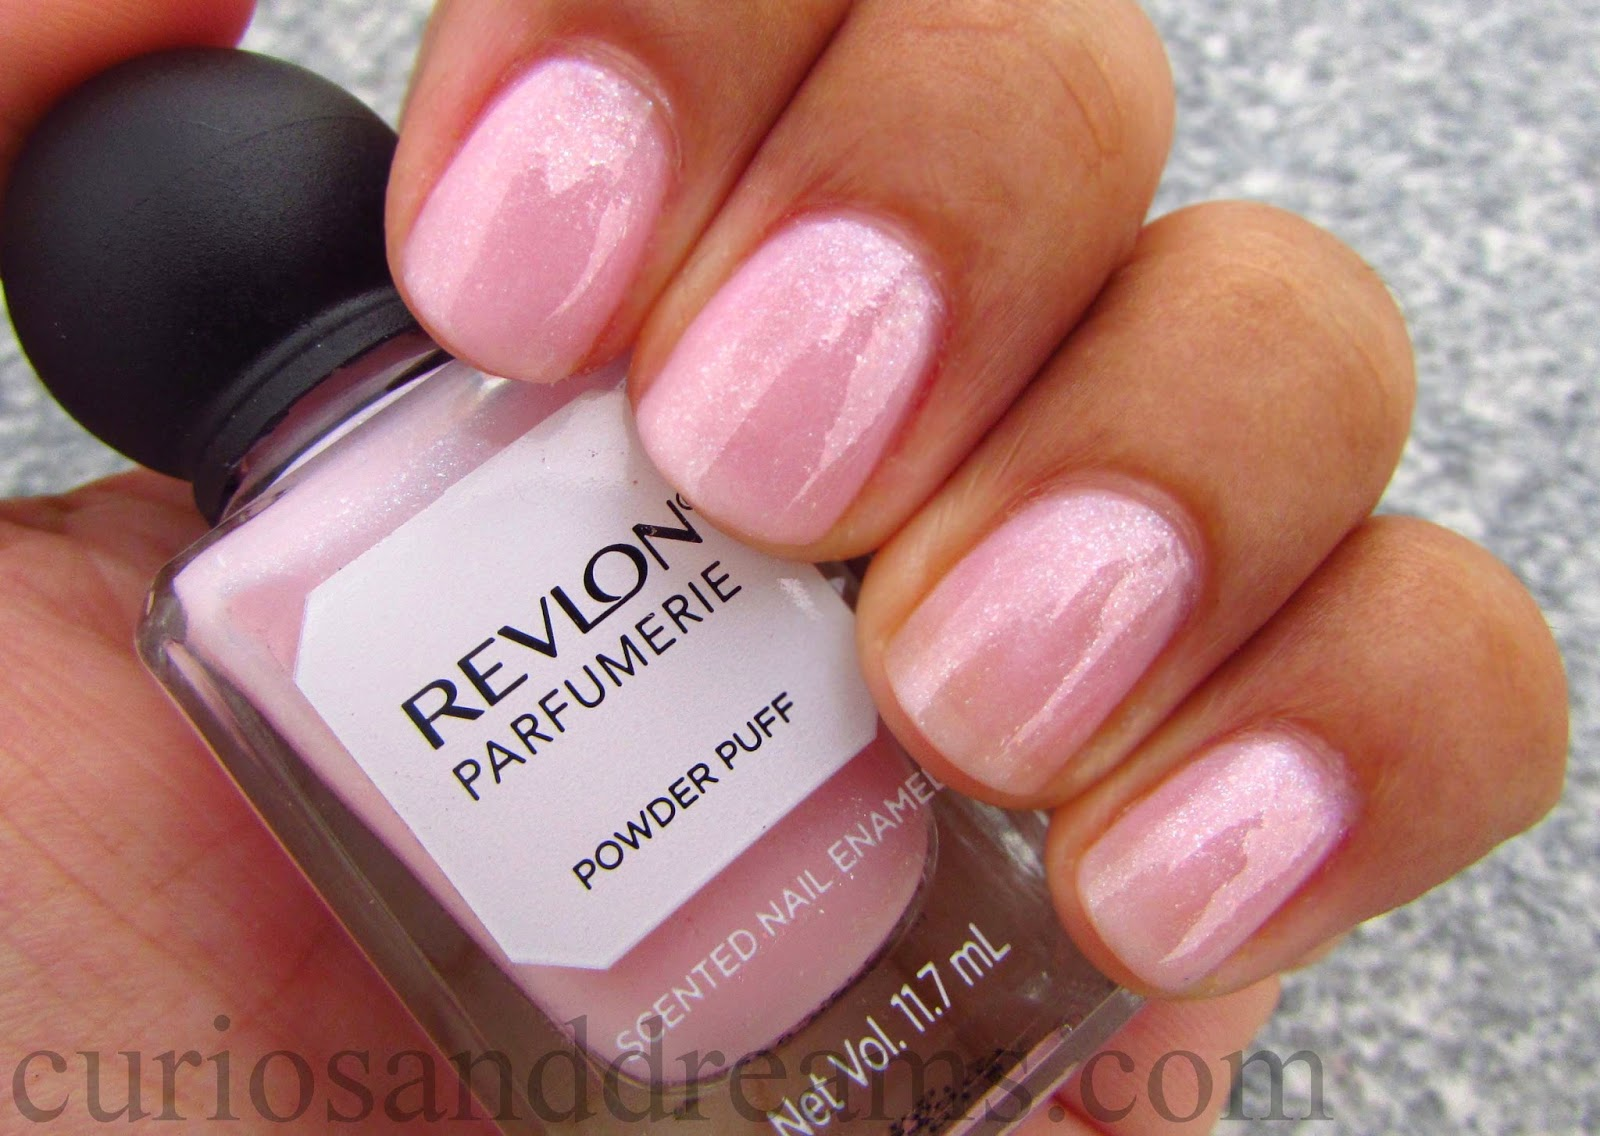 Revlon Parfumerie Powder Puff review,  Revlon Powder Puff review, Revlon Parfumerie Scented Nail Enamel, Powder Puff swatch